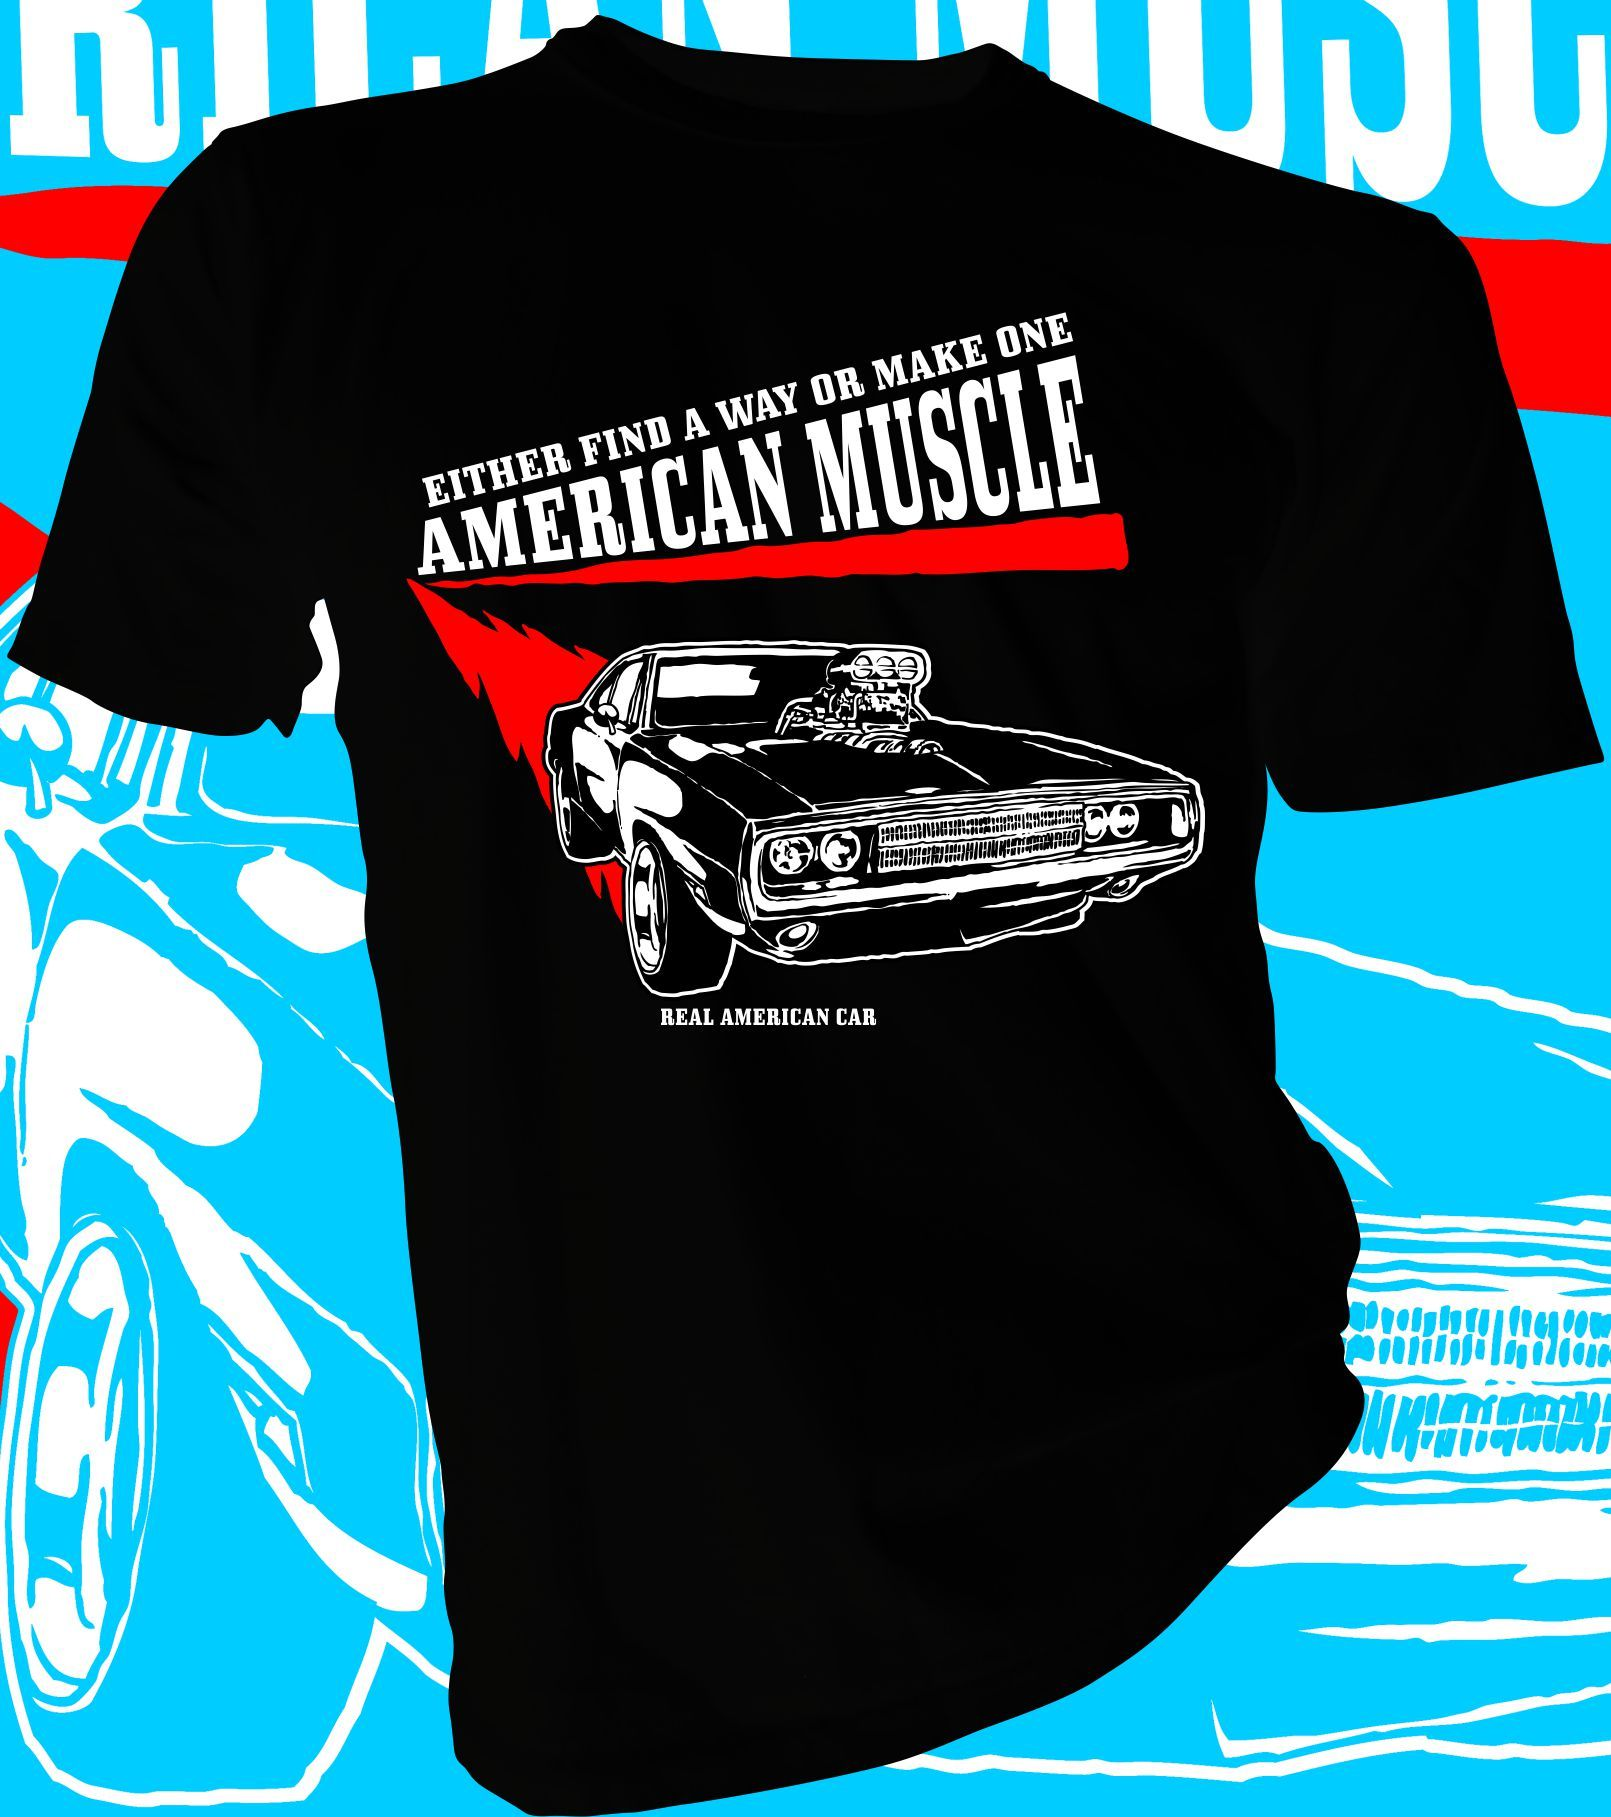 Muscle Car T Shirts For Sale Bcd Tofu House